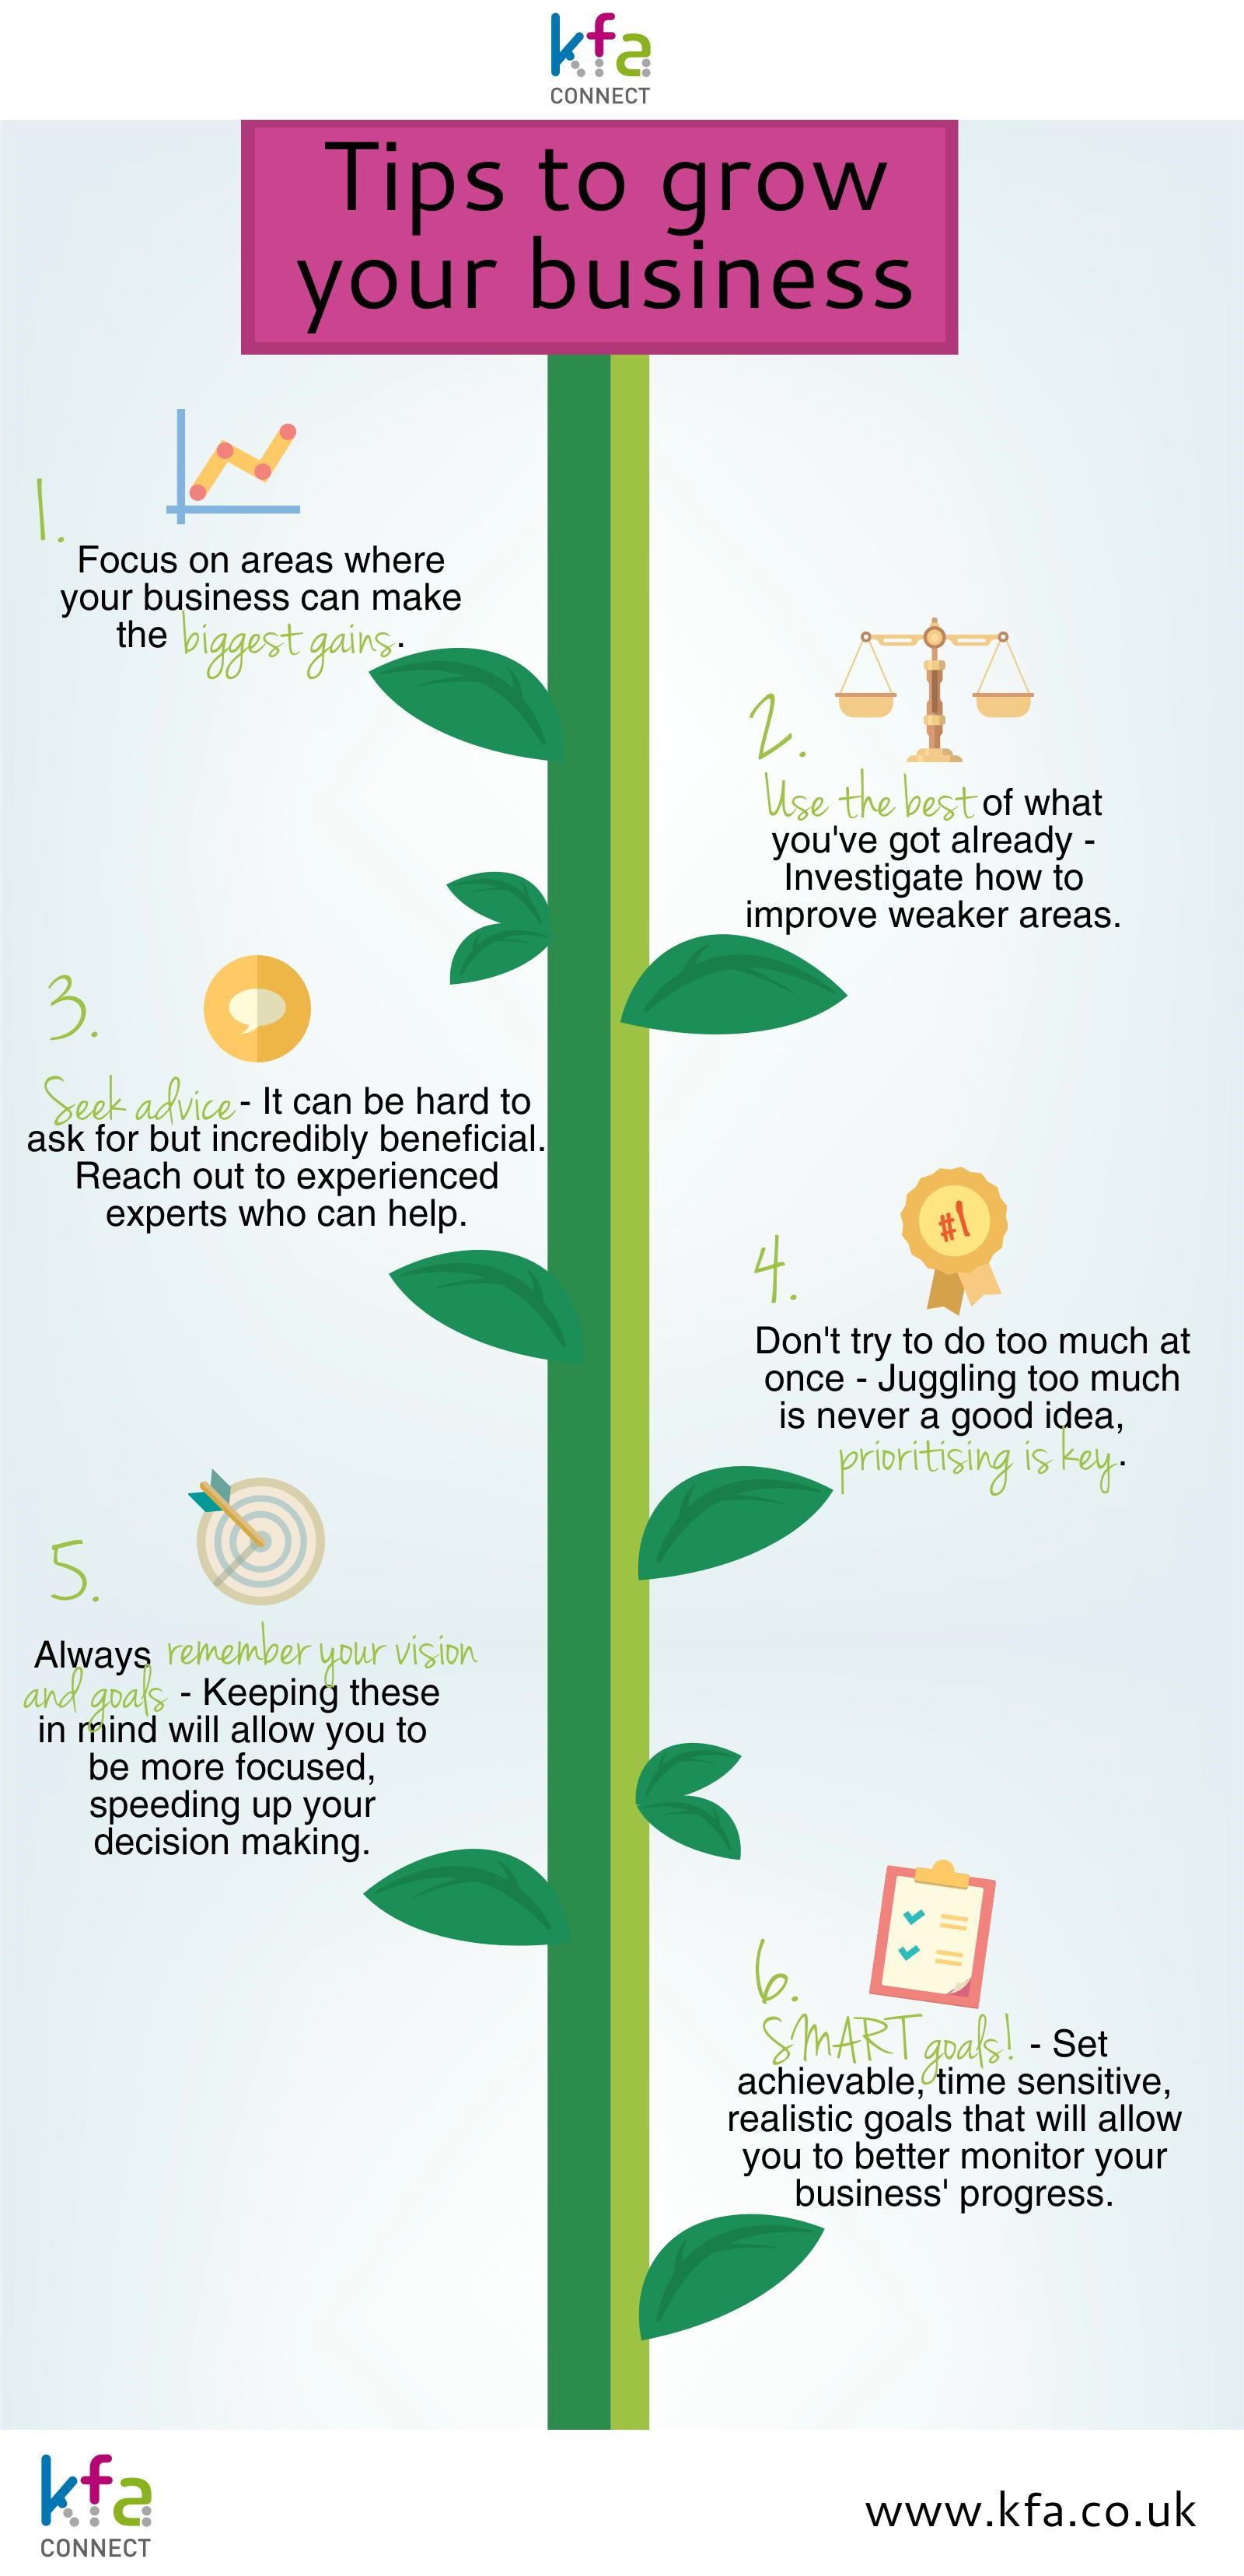 Tips to Grow your Business Sept 2017 Infographic - KFA's Top Tips to Help Grow Your Business